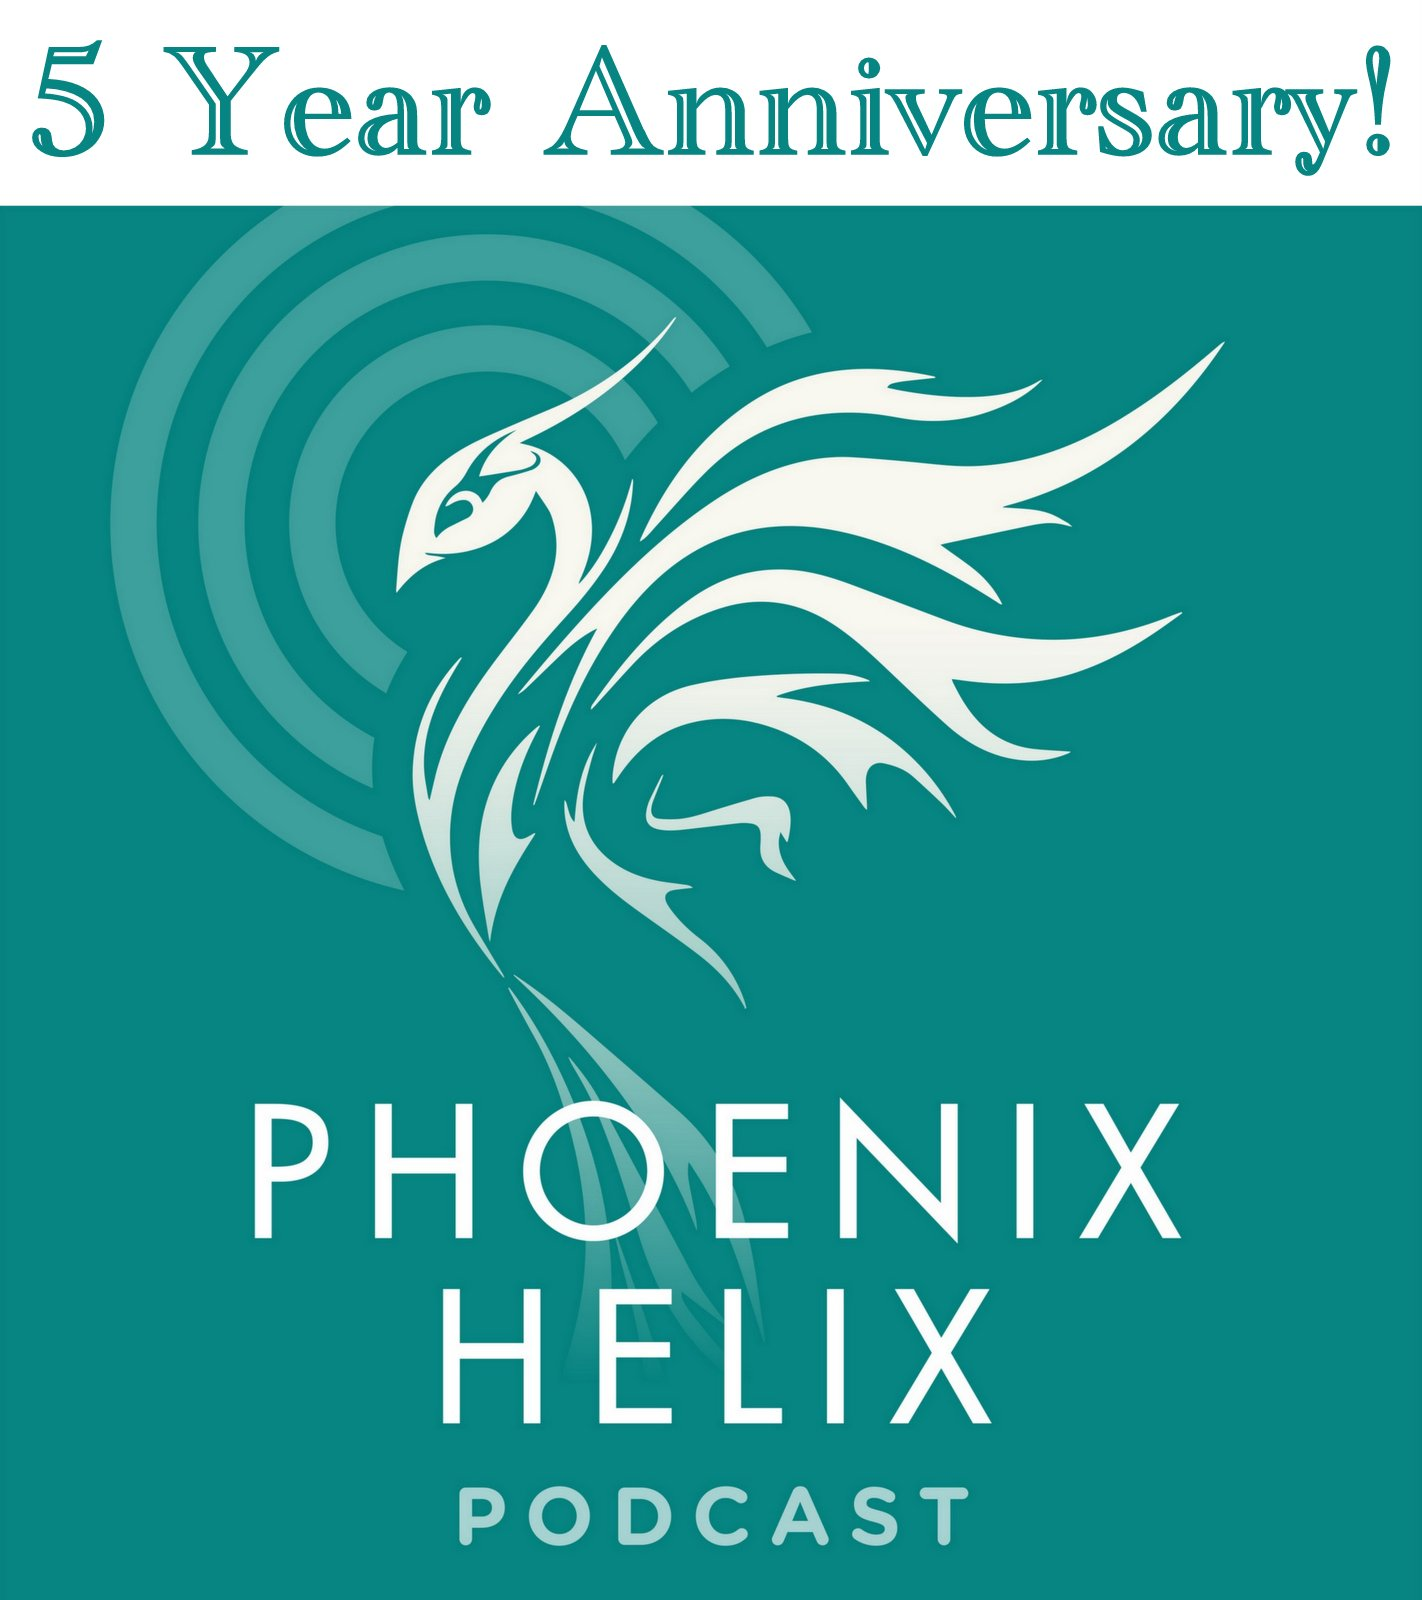 5 Year Podcast Anniversary Giveaway | Phoenix Helix